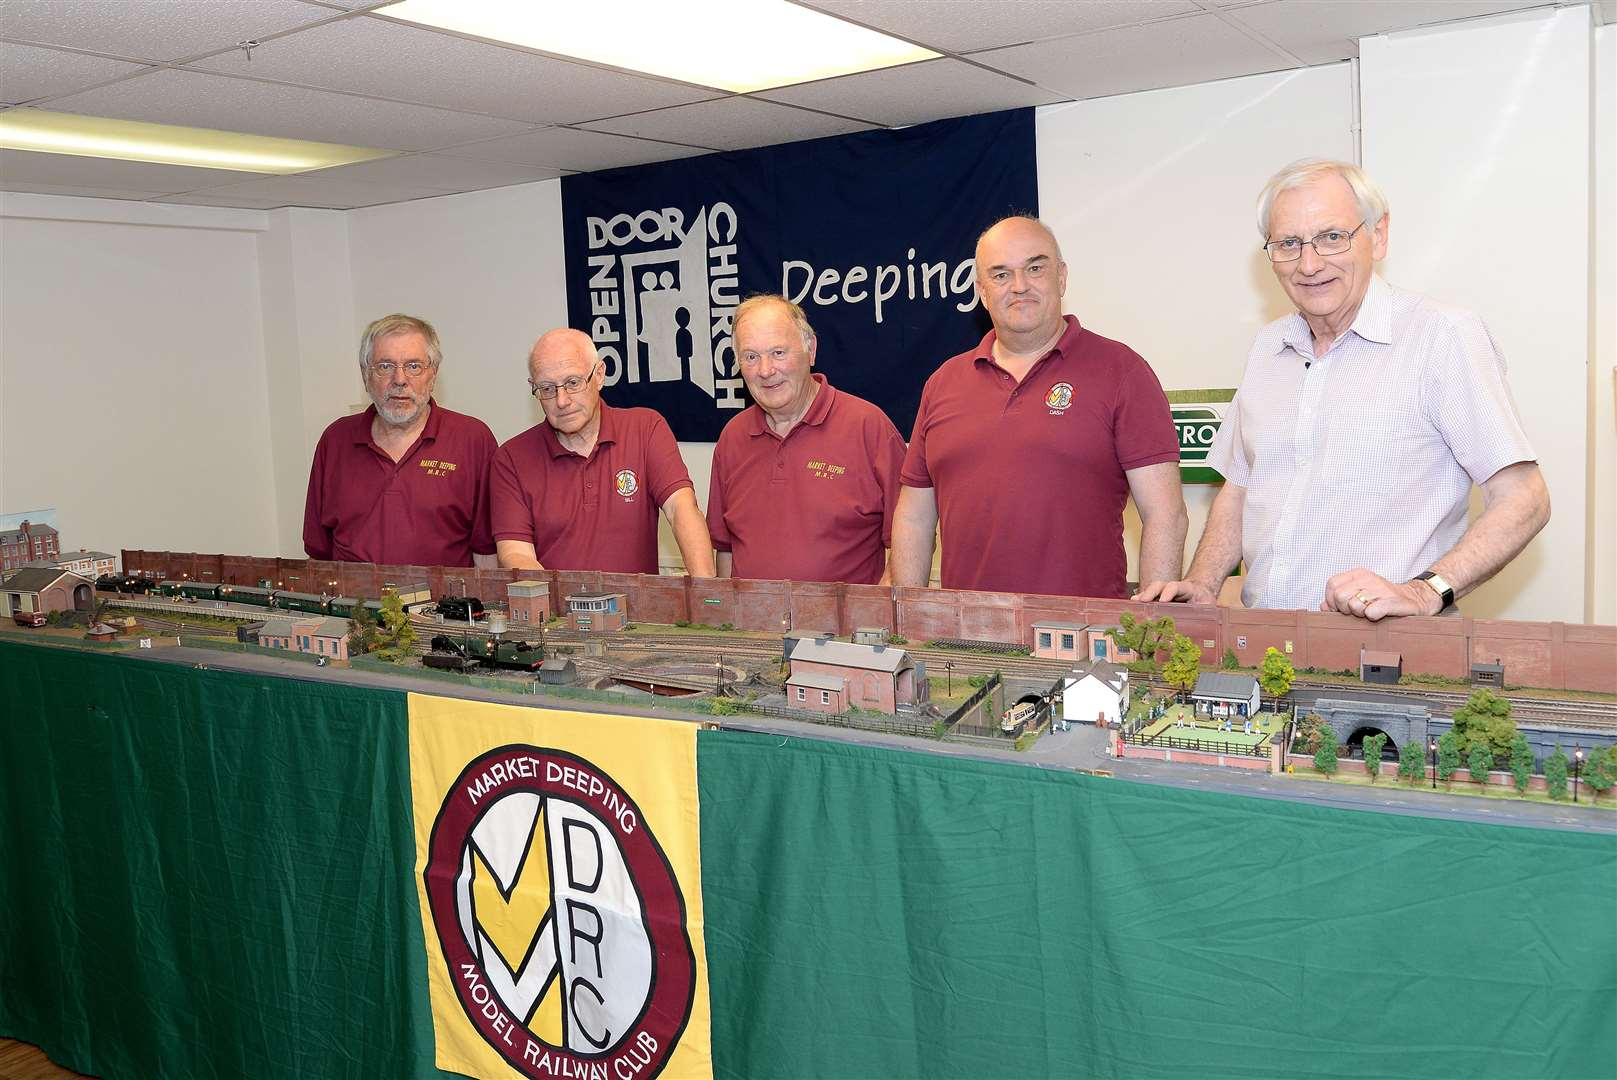 Members of the Market Deeping Model Railway Club (11391094)